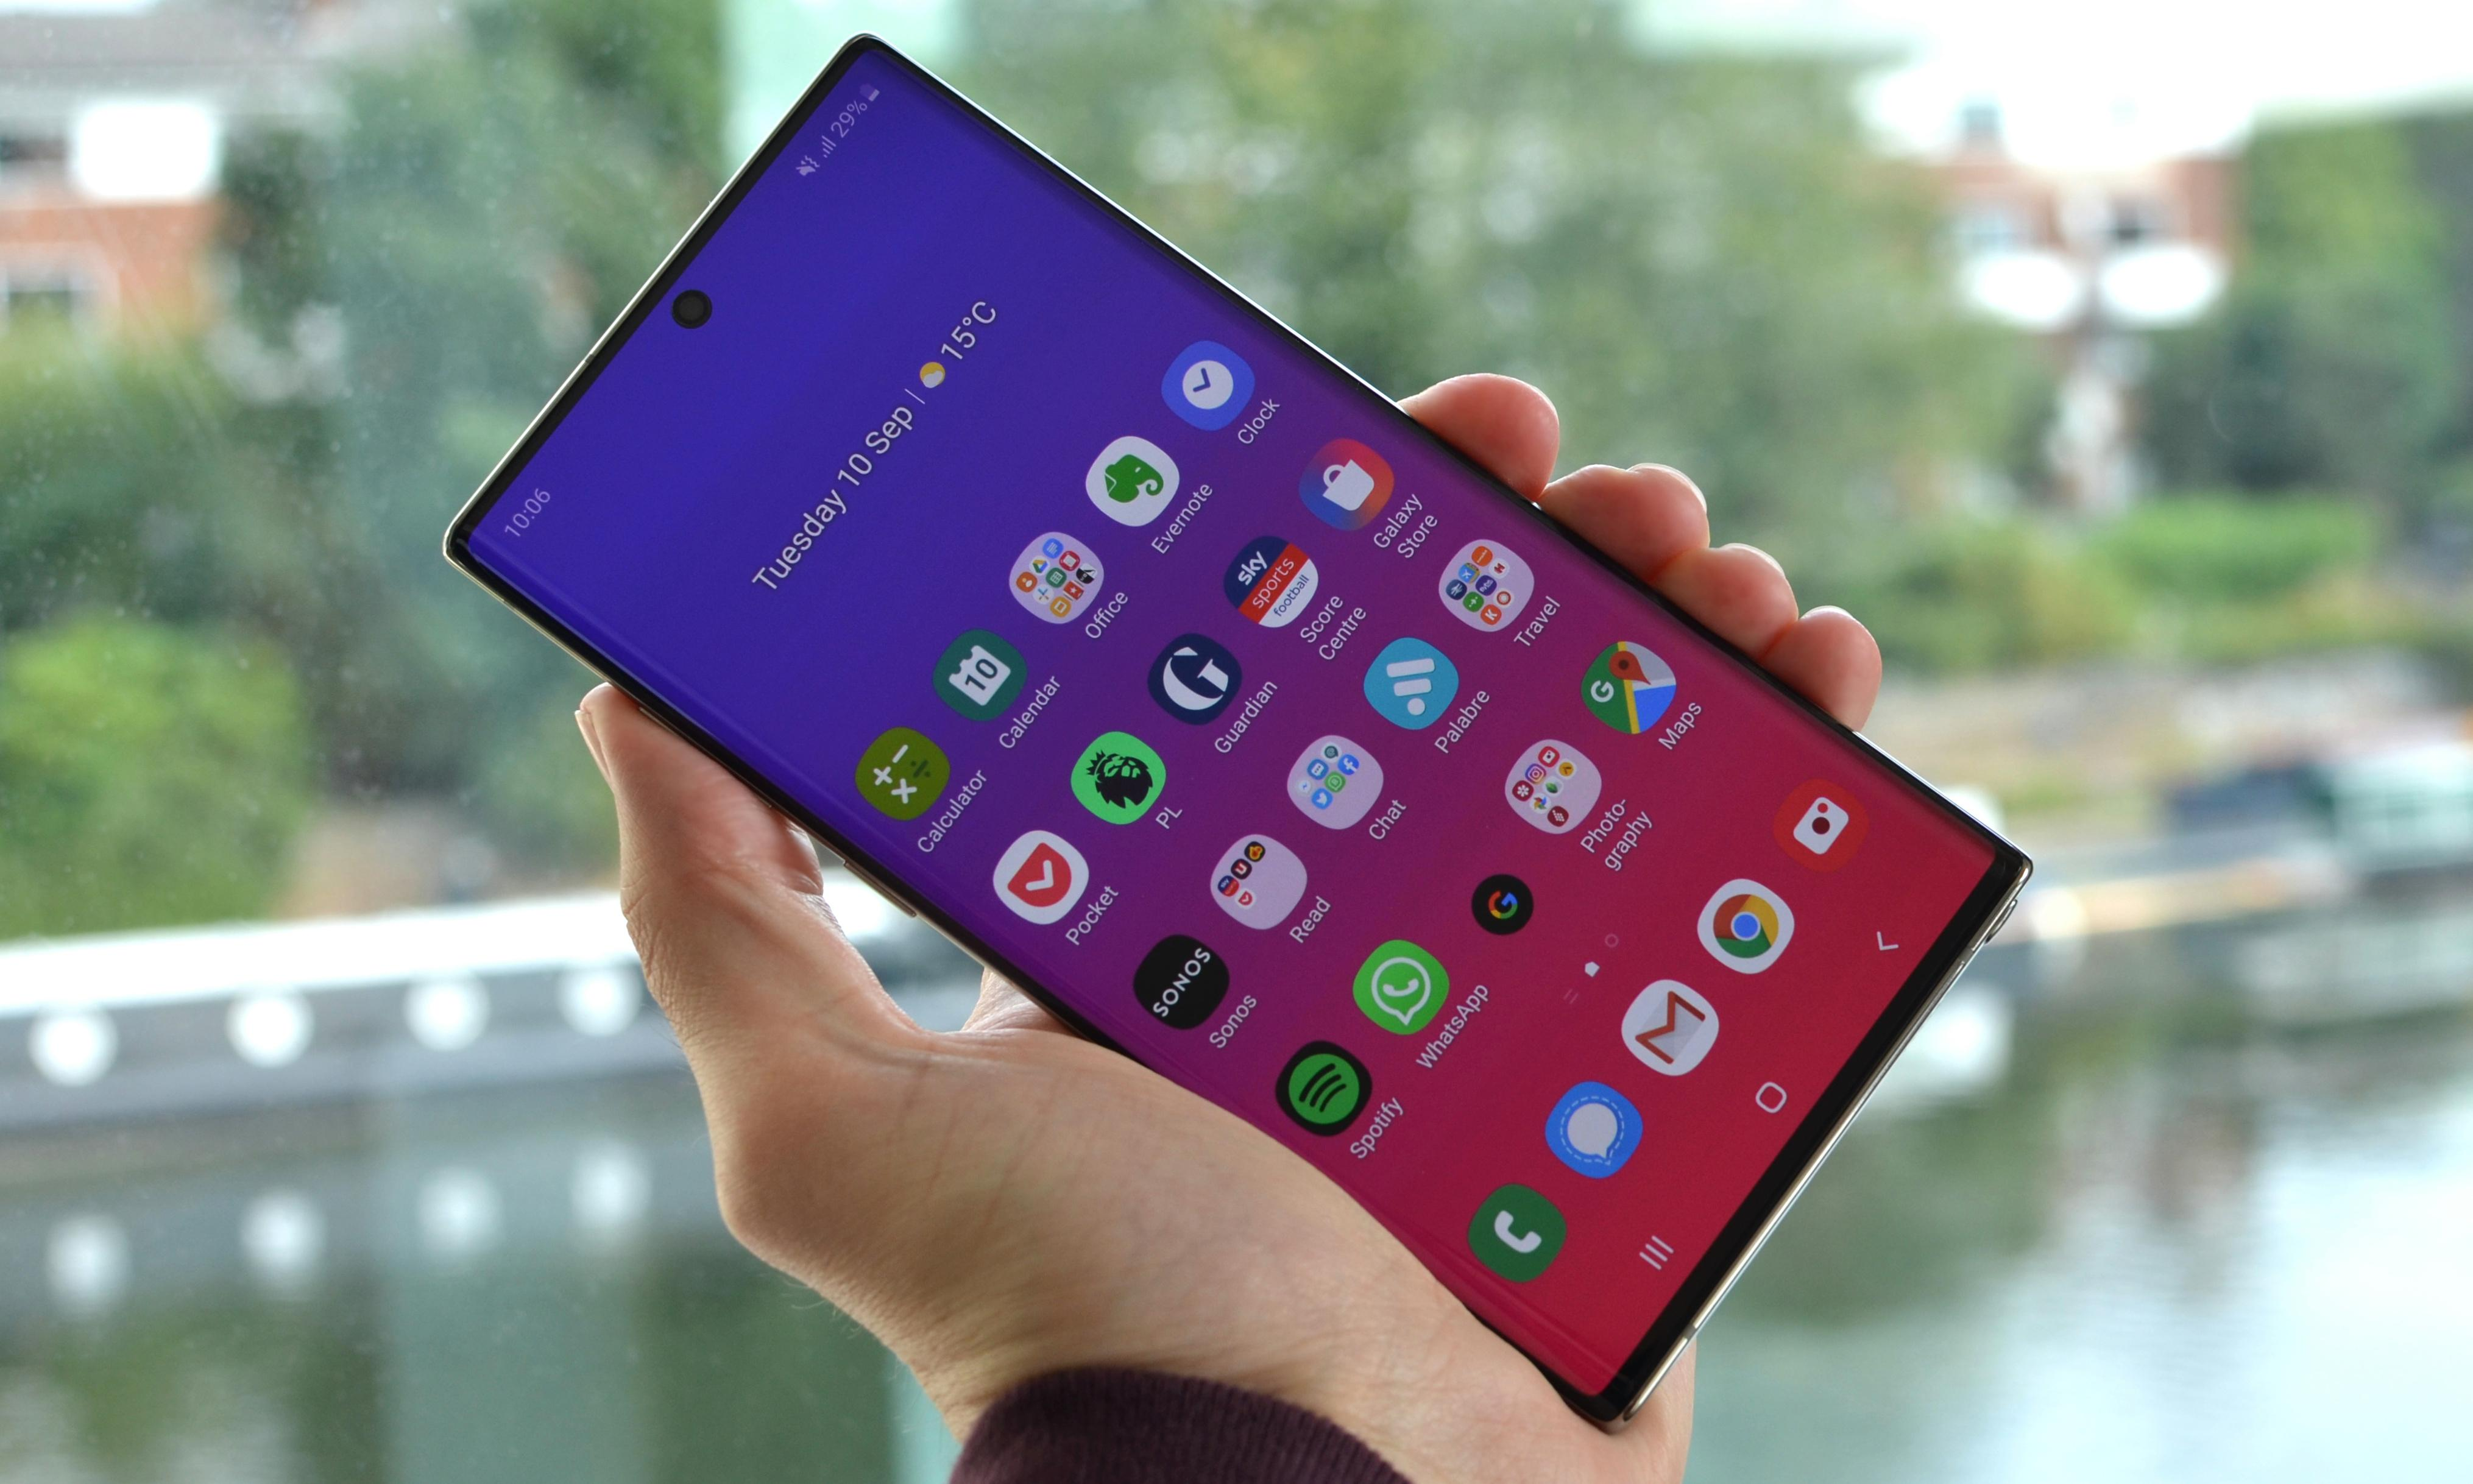 Samsung Galaxy Note 10+ review: bigger and now with a magic wand